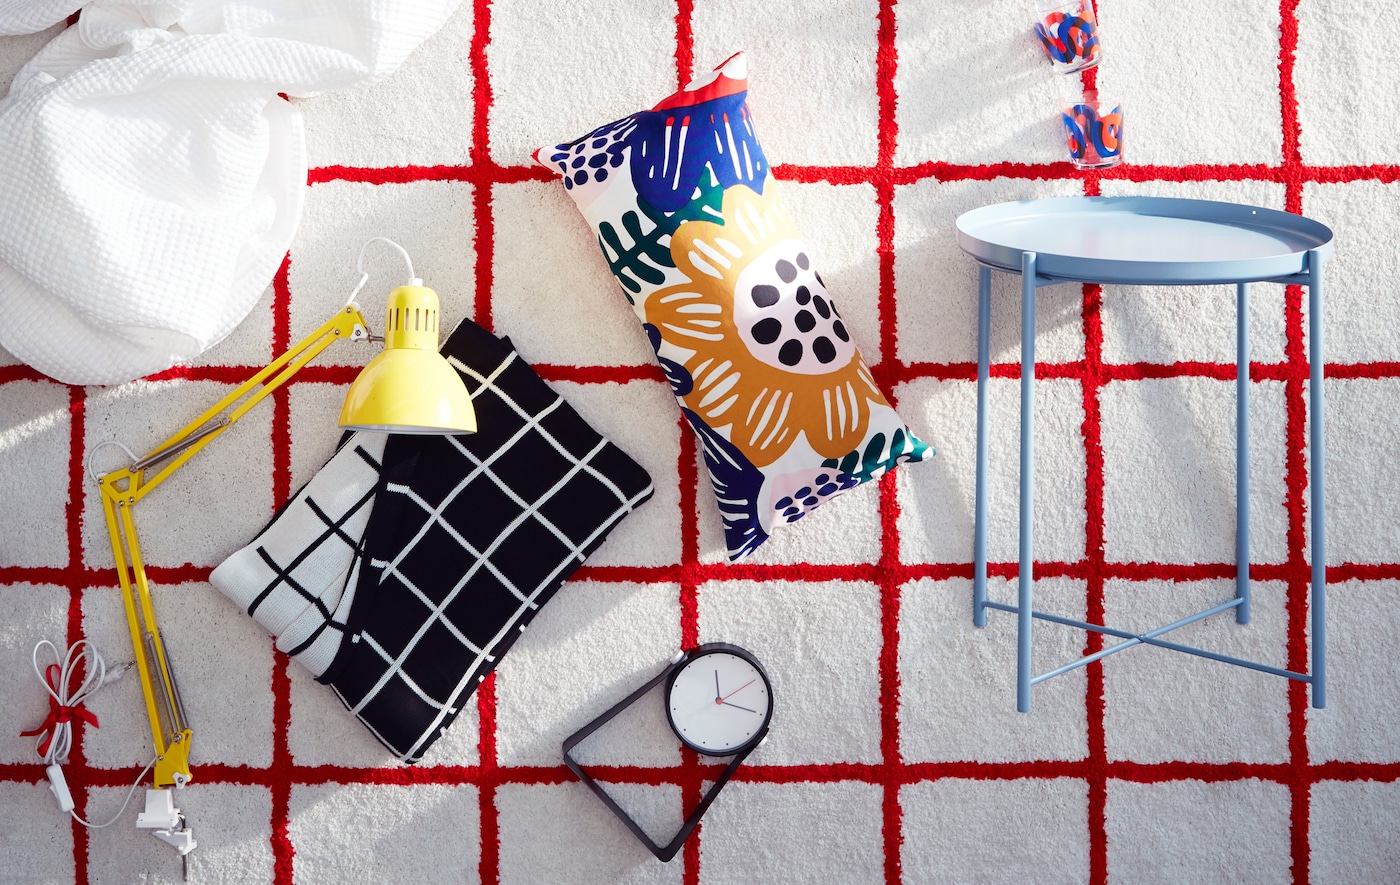 A white IKEA SIMESTED rug with a bright red square pattern and high pile is the backdrop for a product collage.